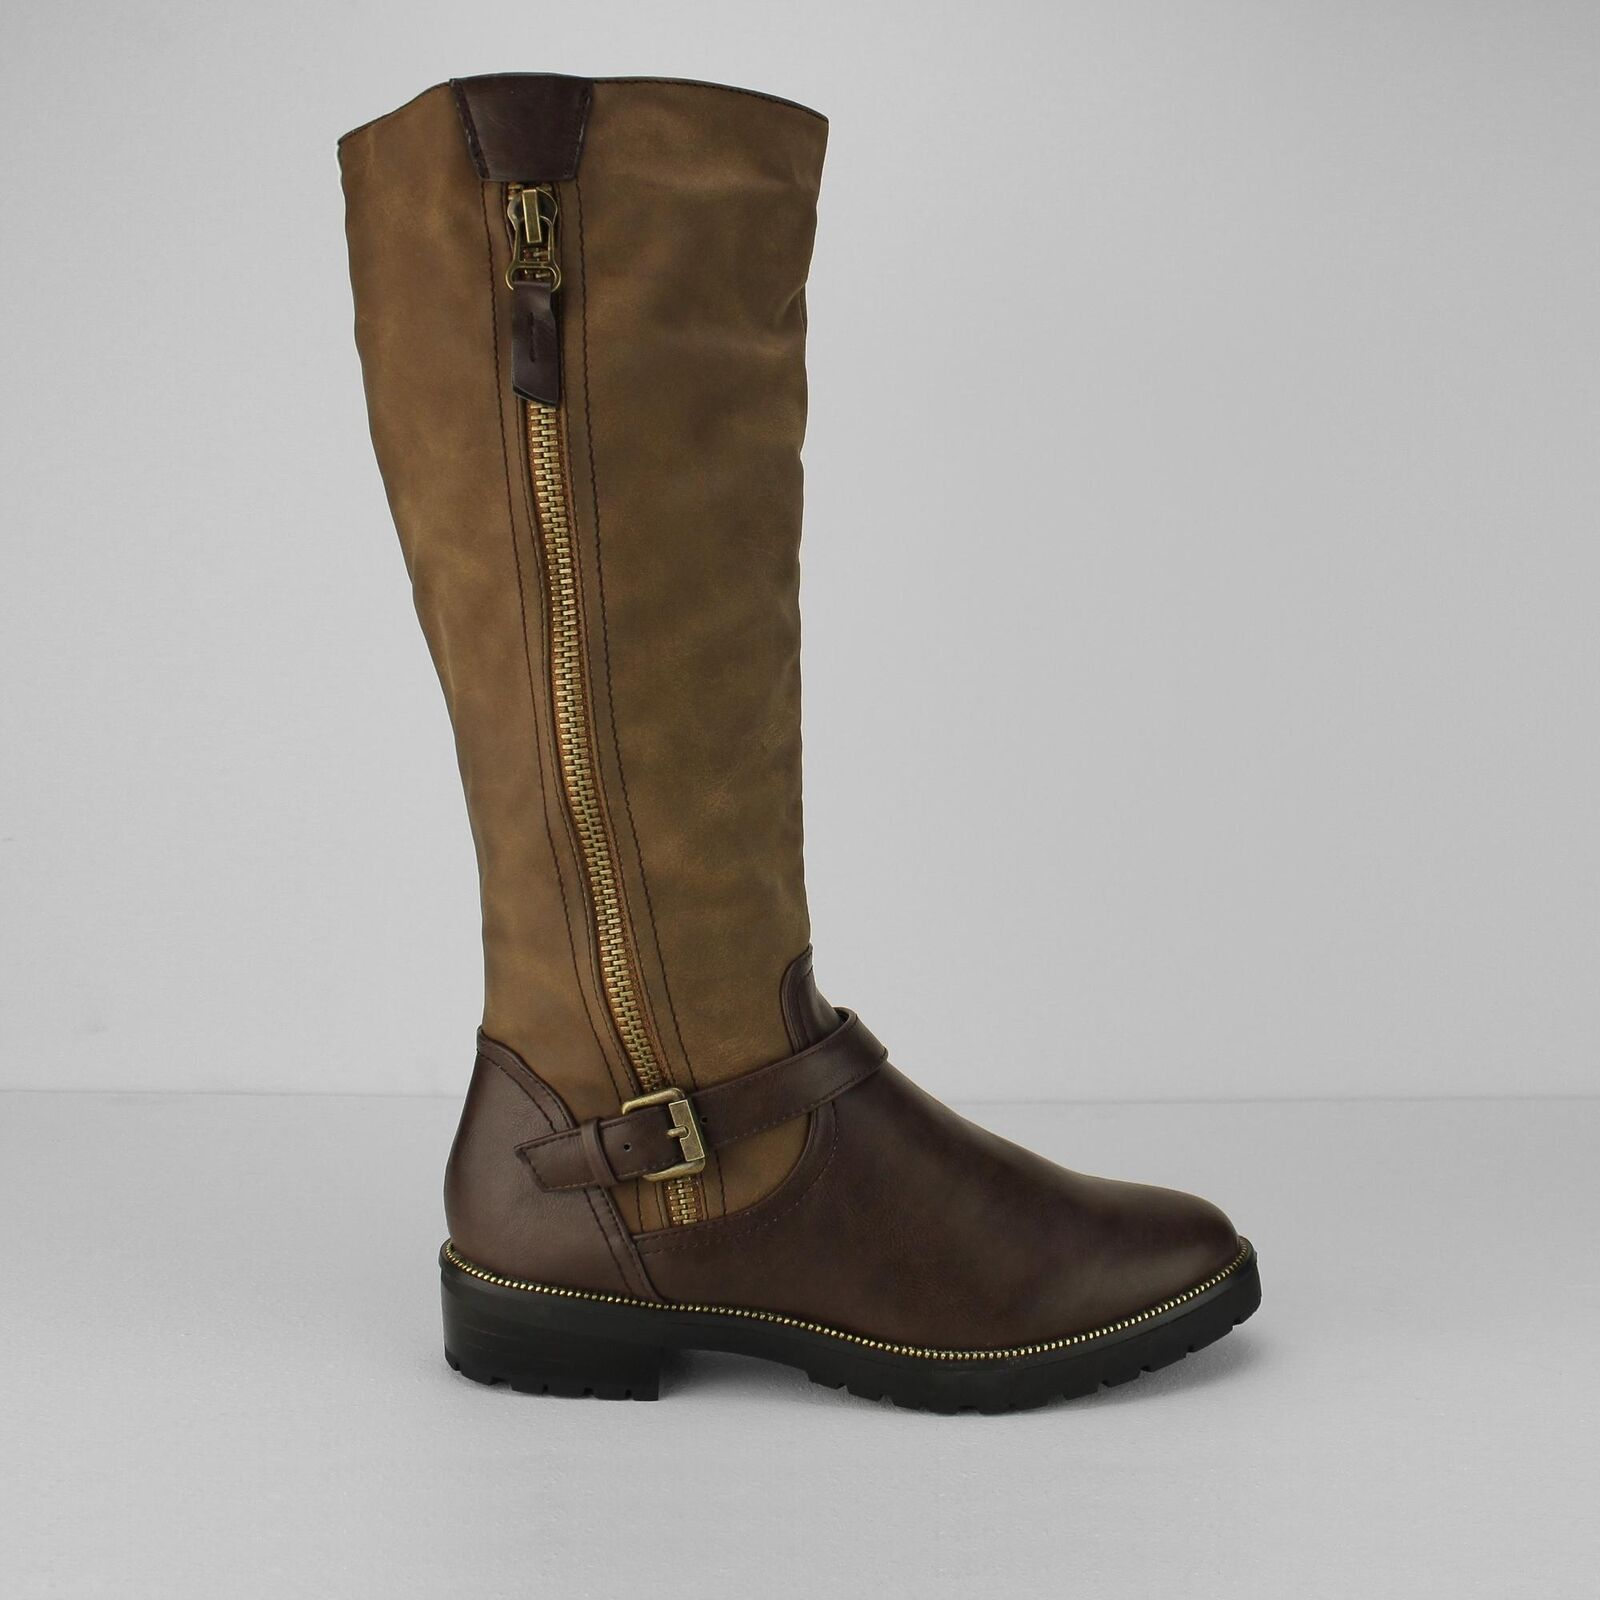 Divaz MANSON Ladies Womens Faux Leather Knee High Zip Up Riding Boots Brown